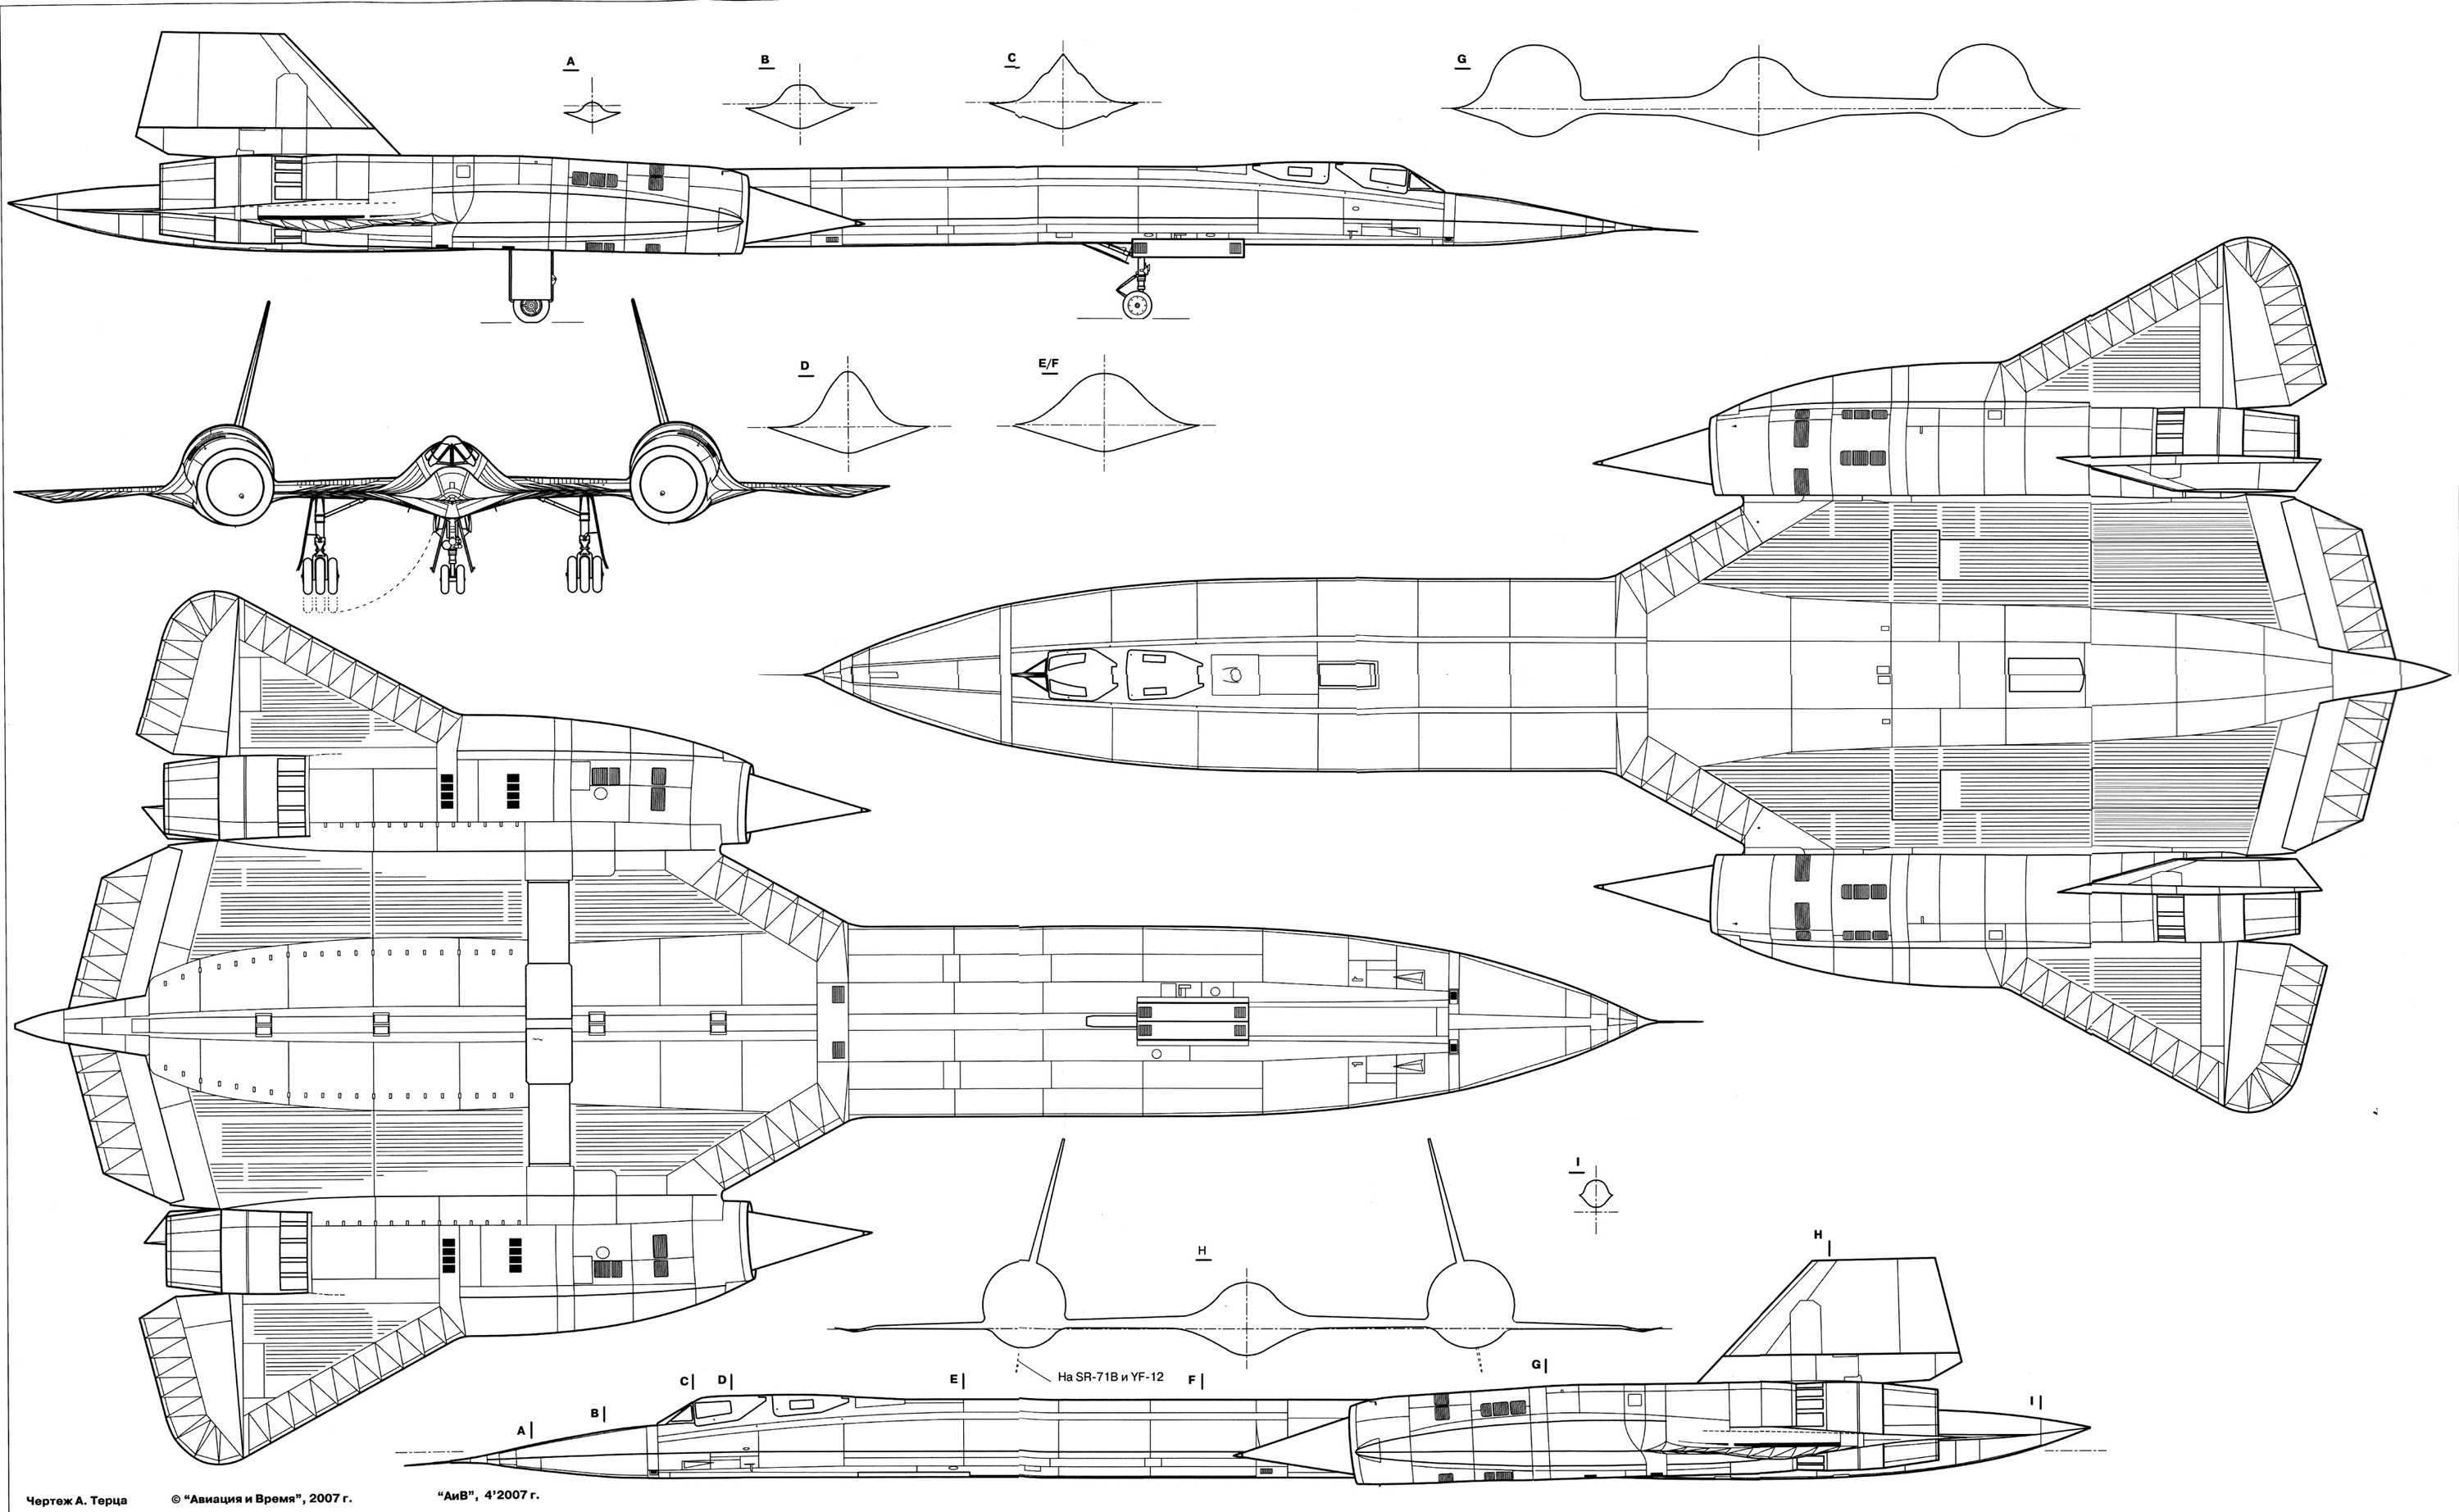 Lockheed SR-71 Blackbird blueprint